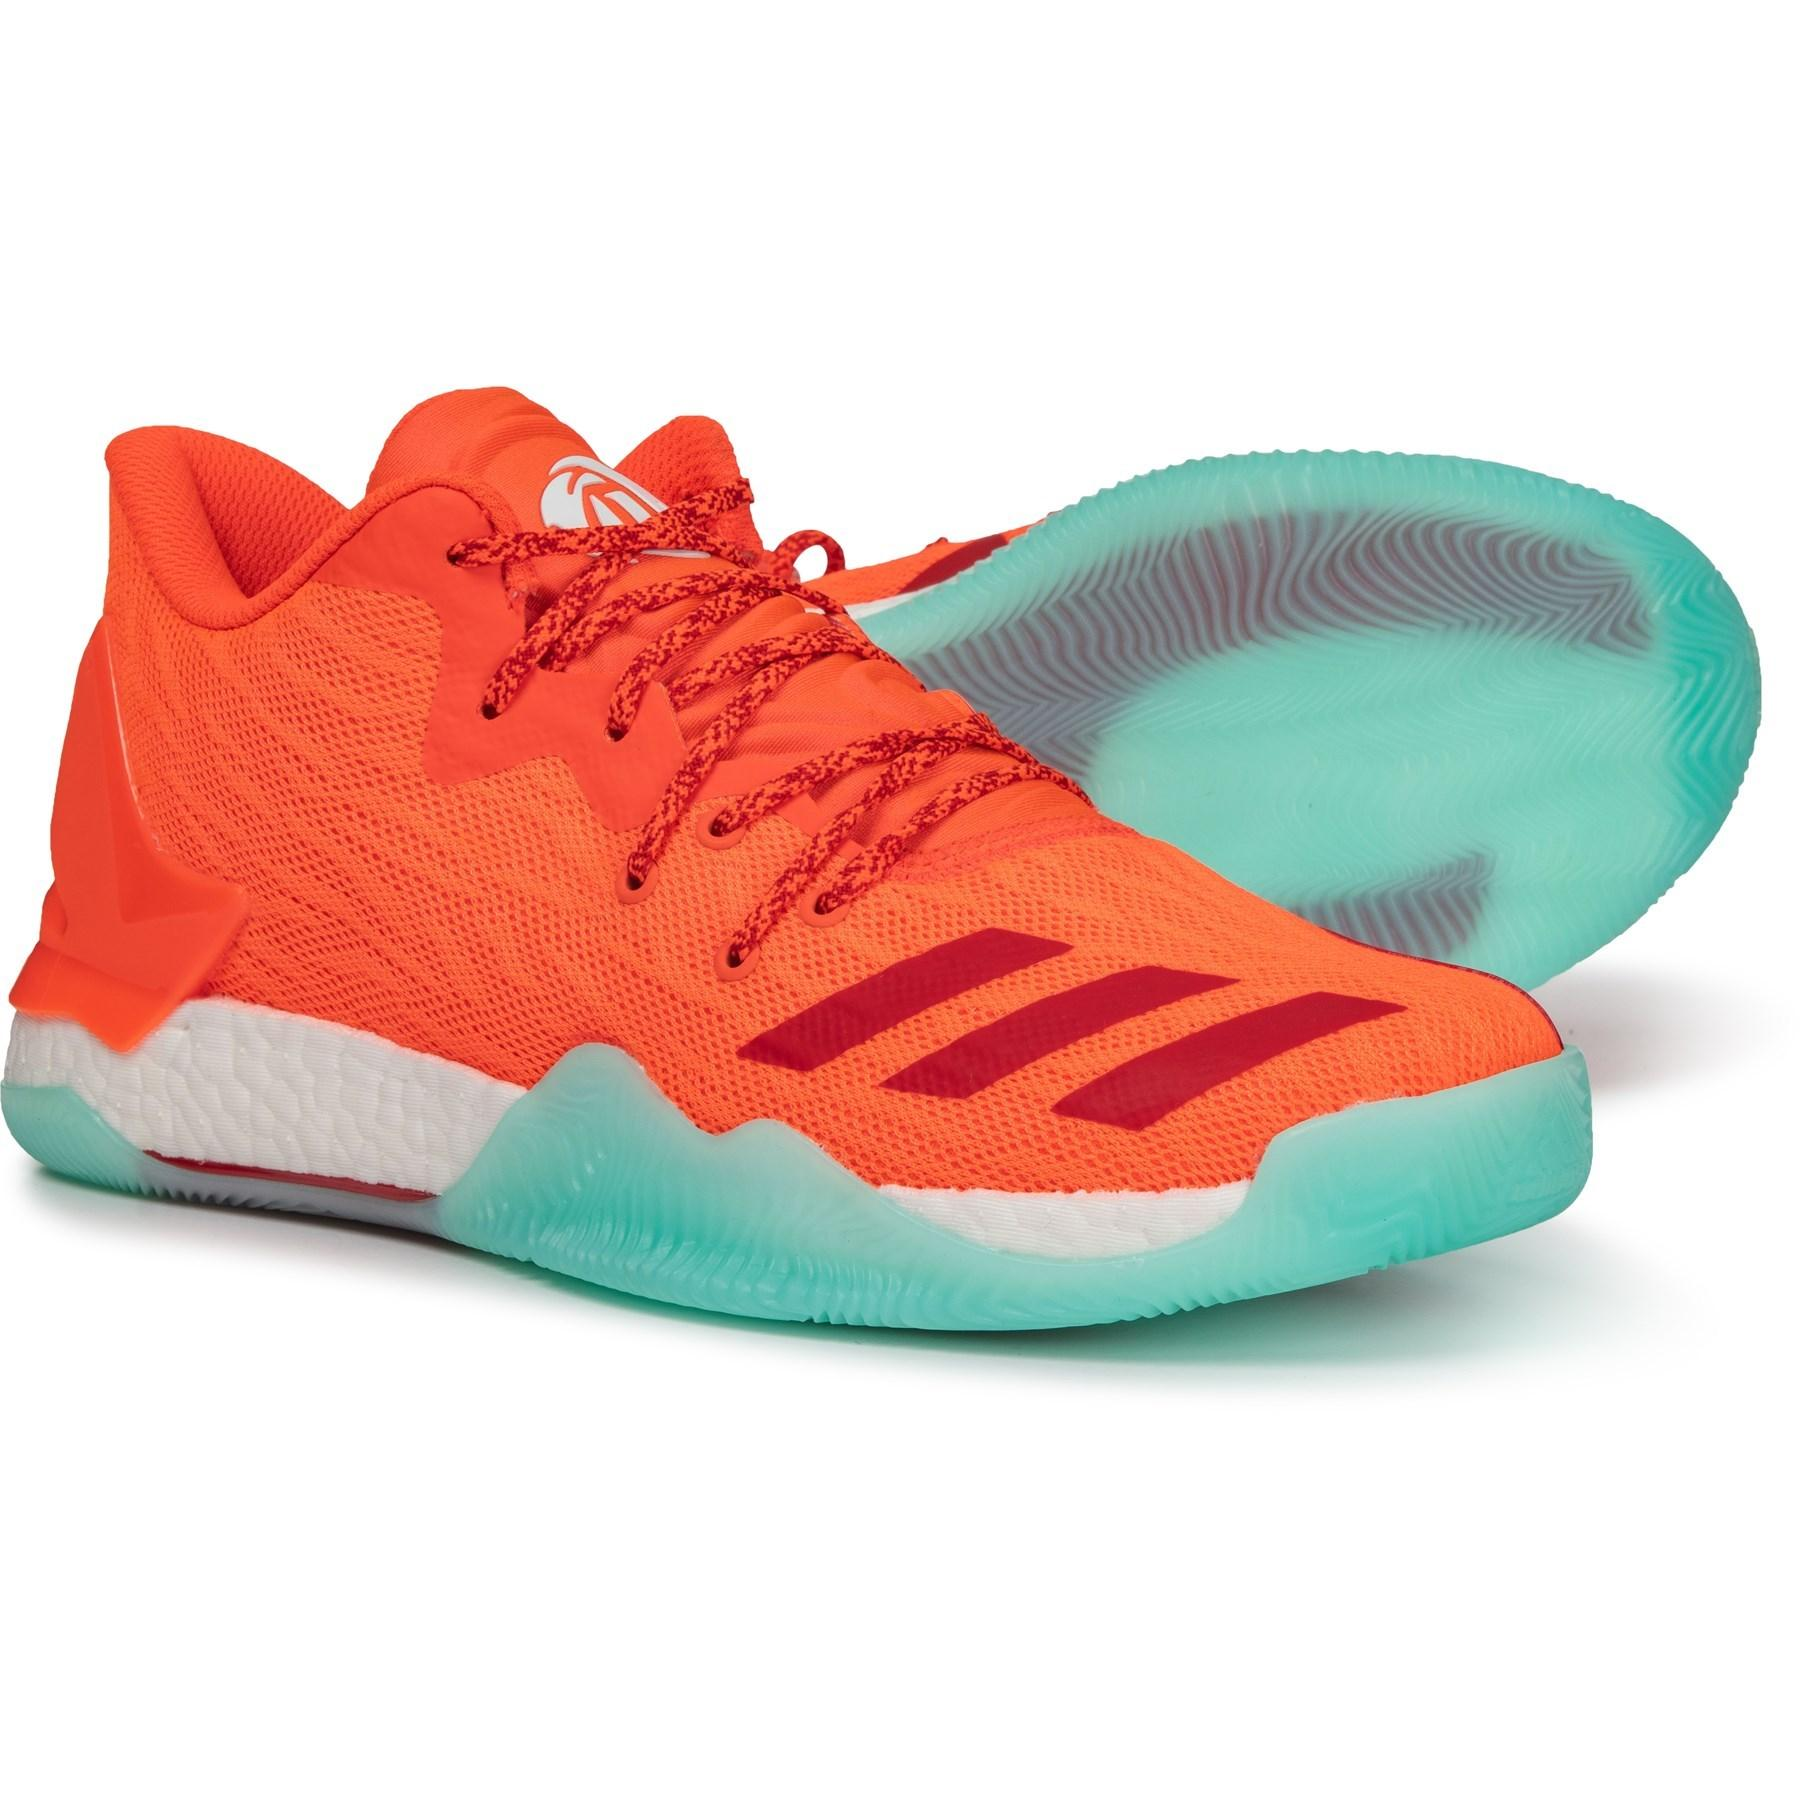 845ead720954 Lyst - adidas D Rose 7 Low Basketball Shoes (for Men) in Red for Men